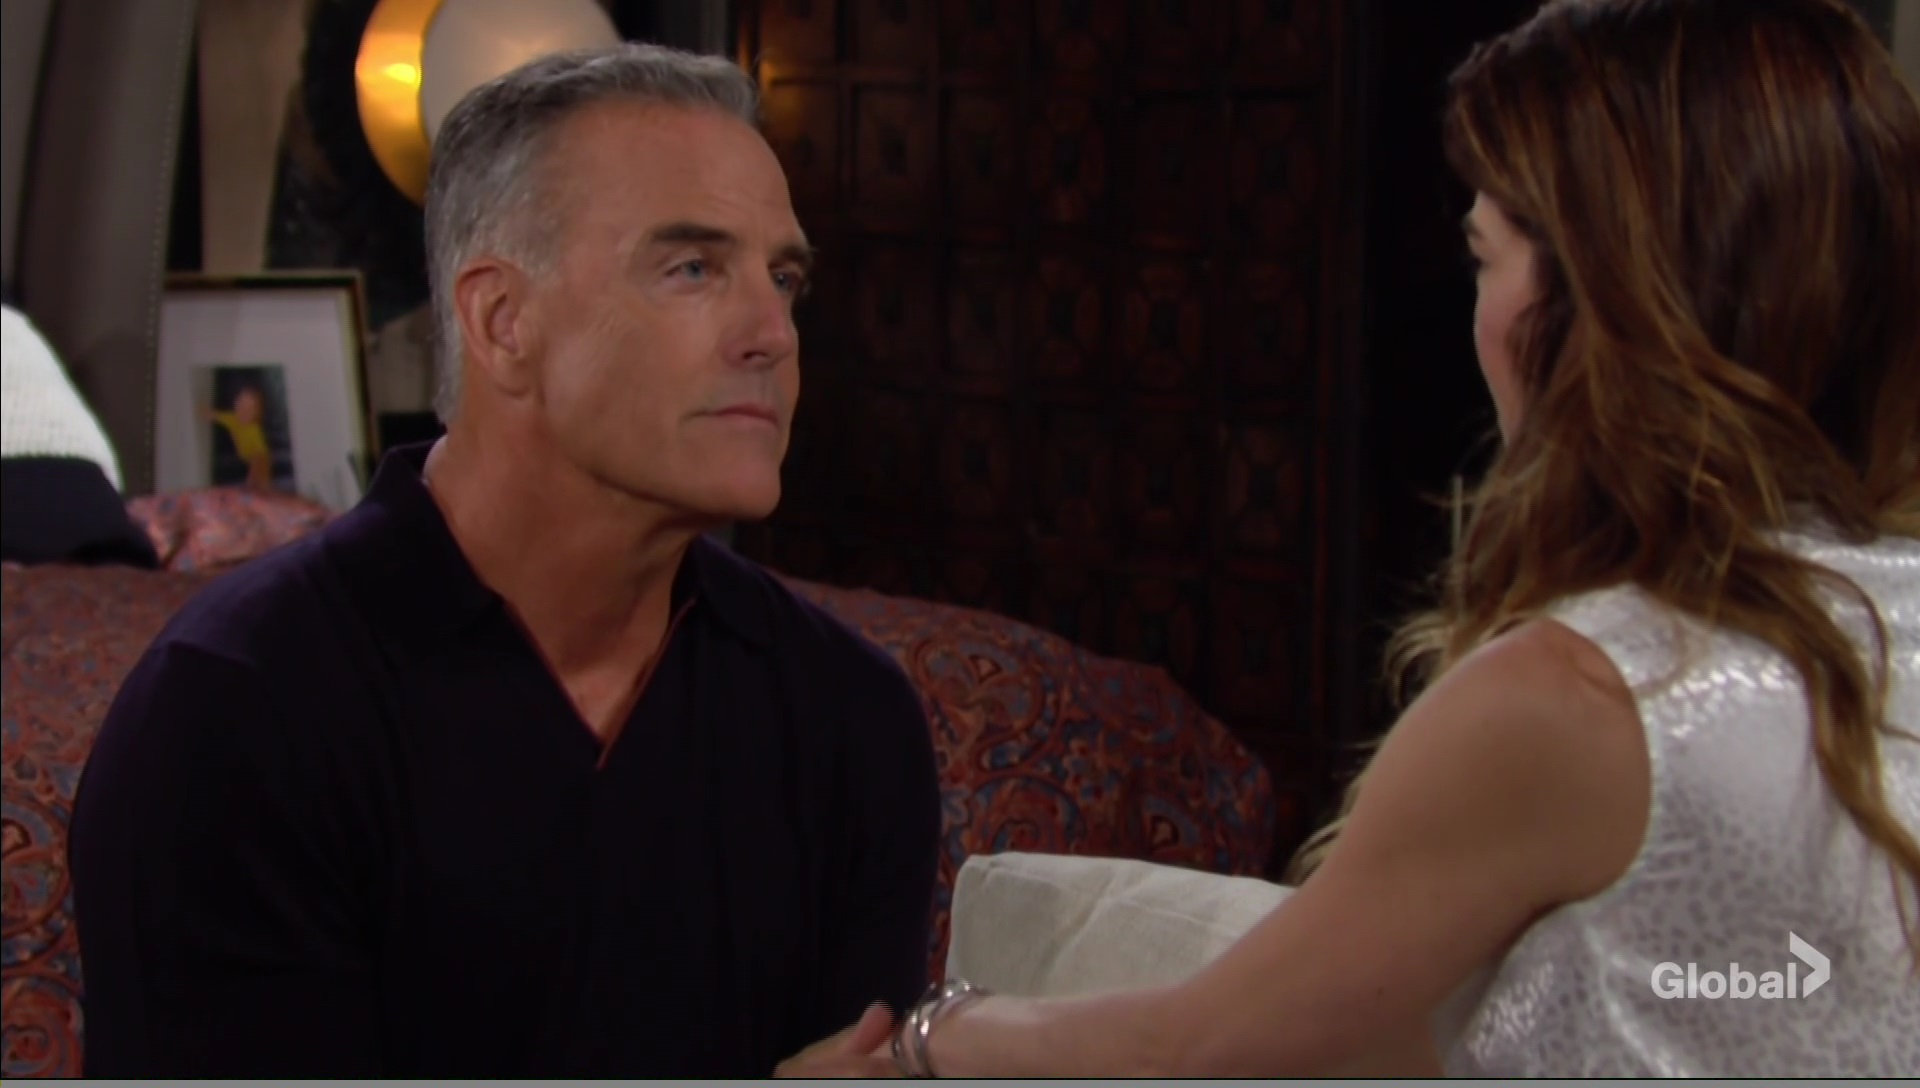 ashland wants marry victoria young restless